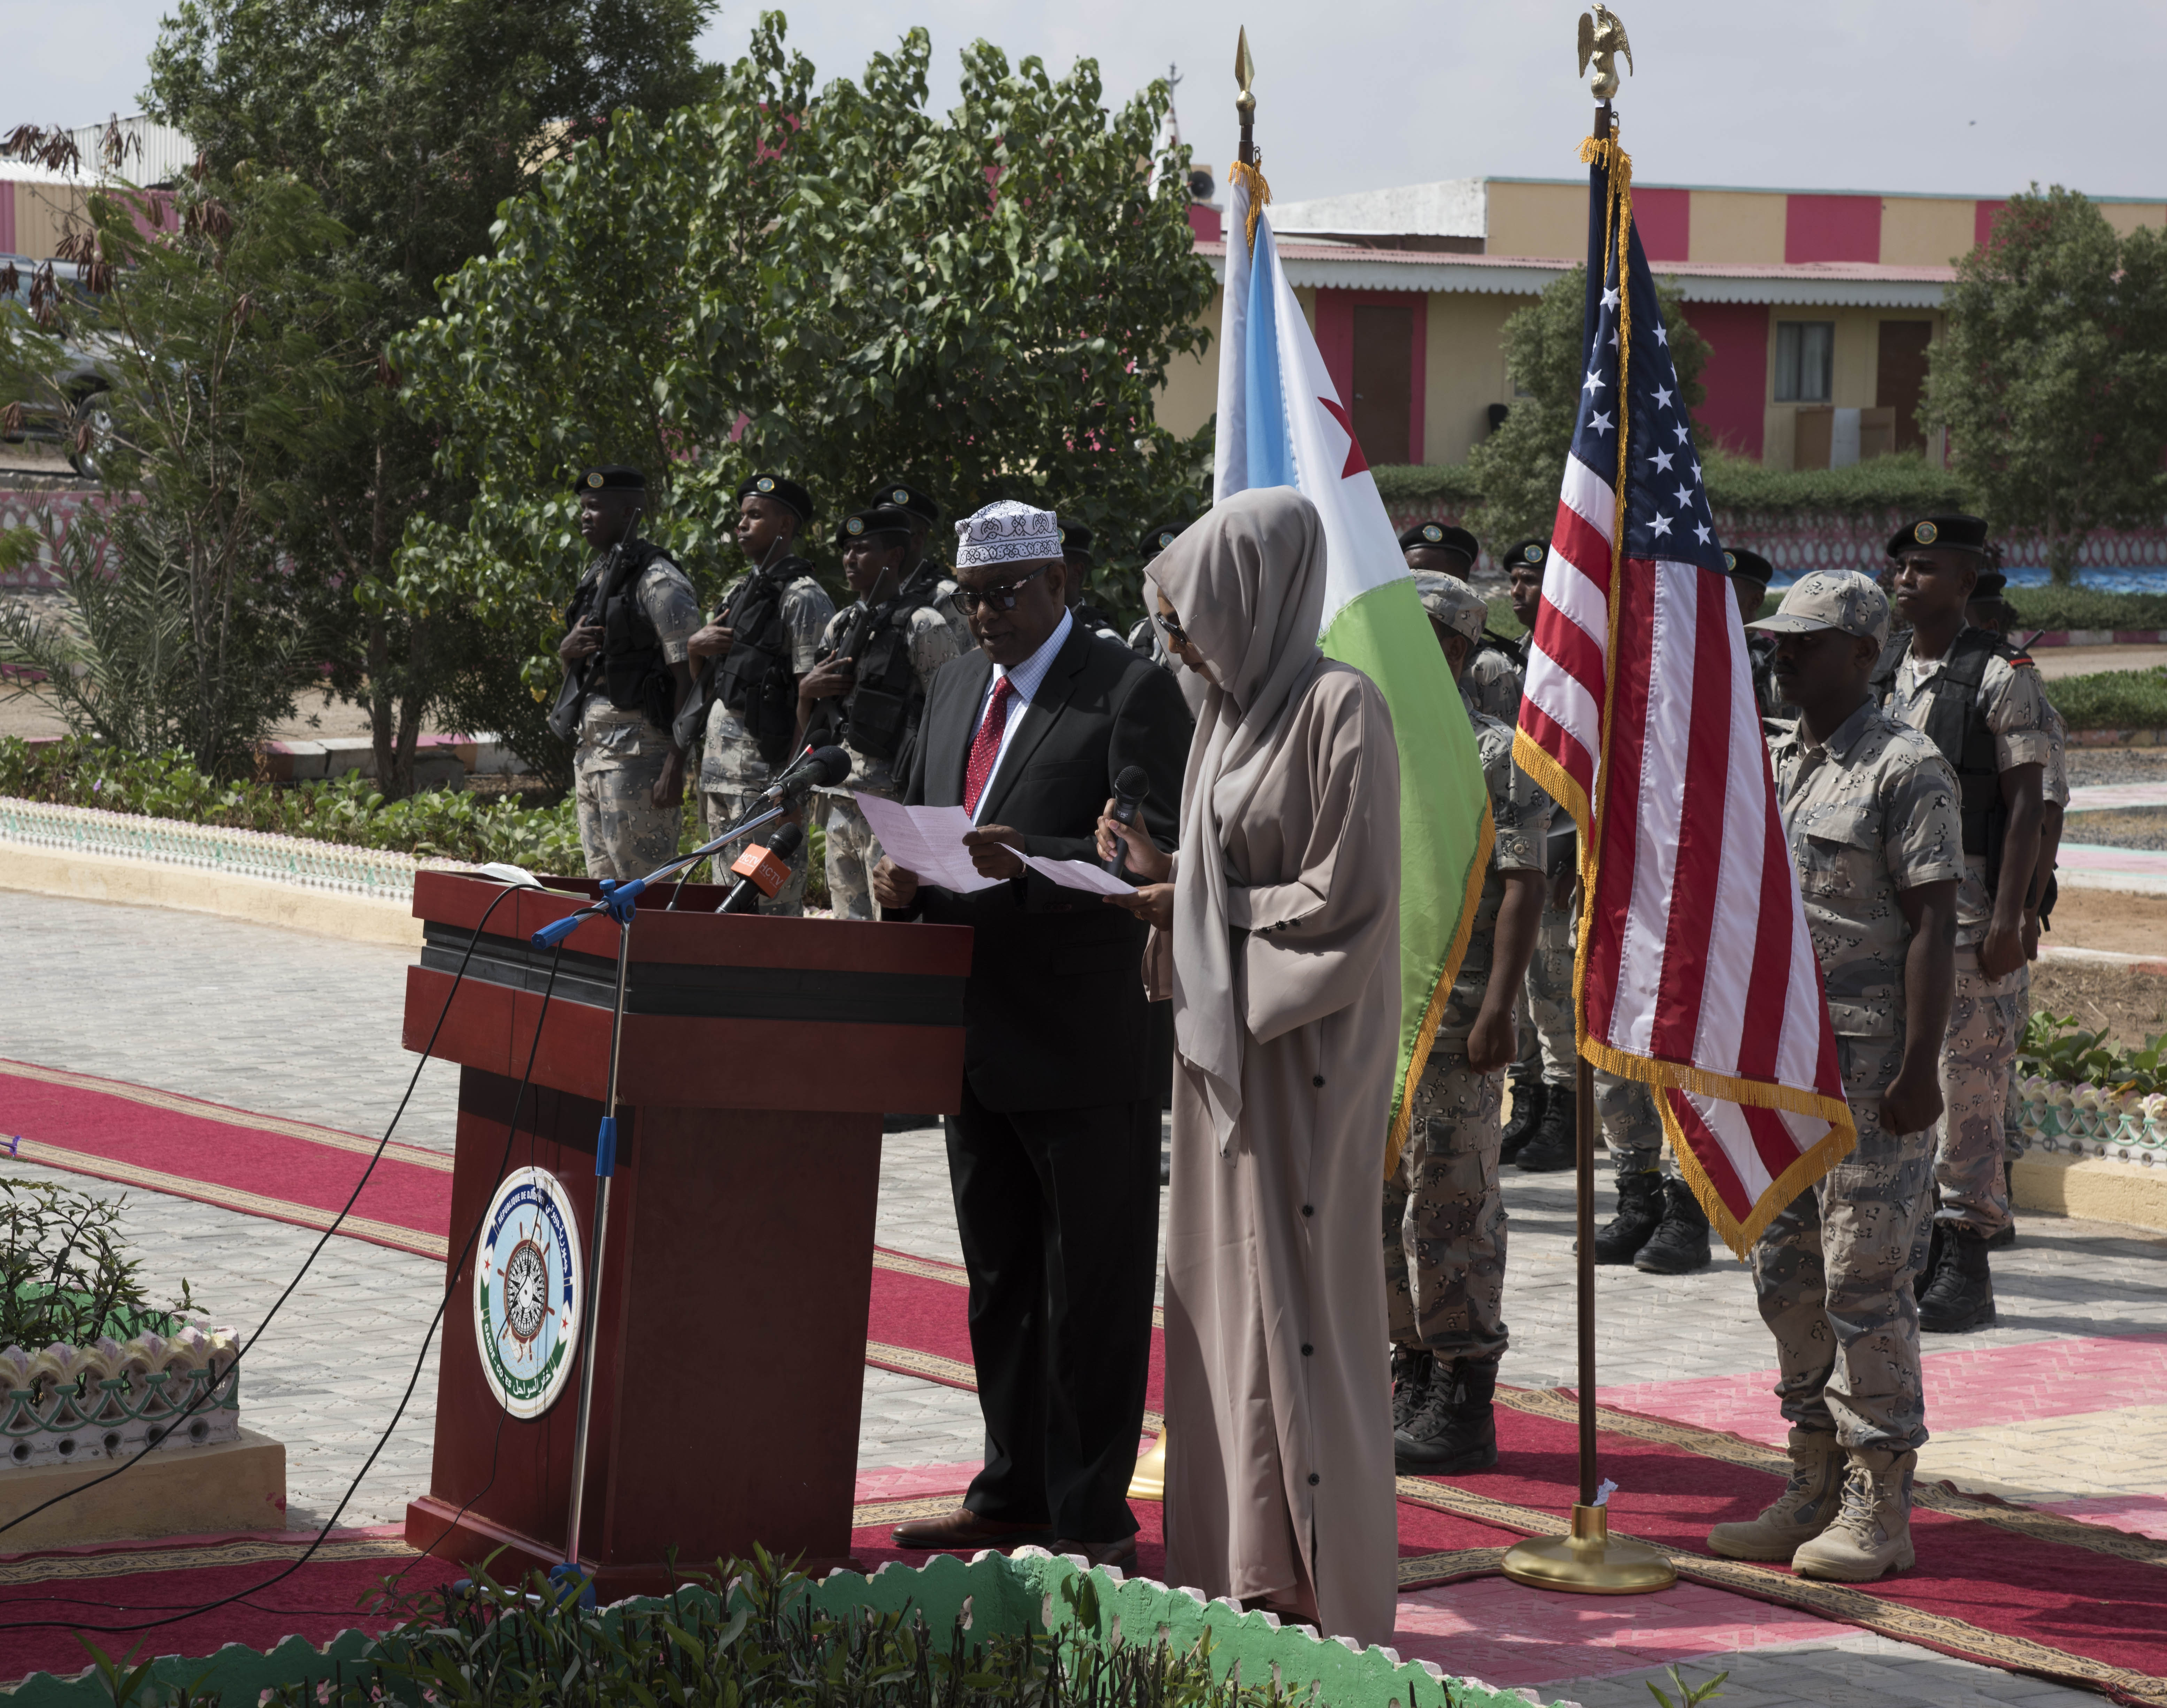 Mohamed Moalin Hassan, state minister for the ministry of internal security, Federal Government of Somalia, gives remarks during the opening ceremony for exercise Cutlass Express 2018 Jan. 31 in Djibouti, Djibouti. Cutlass Express is designed to improve regional cooperation, maritime domain awareness and information sharing practices to increase capabilities between the U.S., East African and Western Indian Ocean nations. (U.S. Air National Guard Photo by Staff Sgt. Allyson Manners / Released)